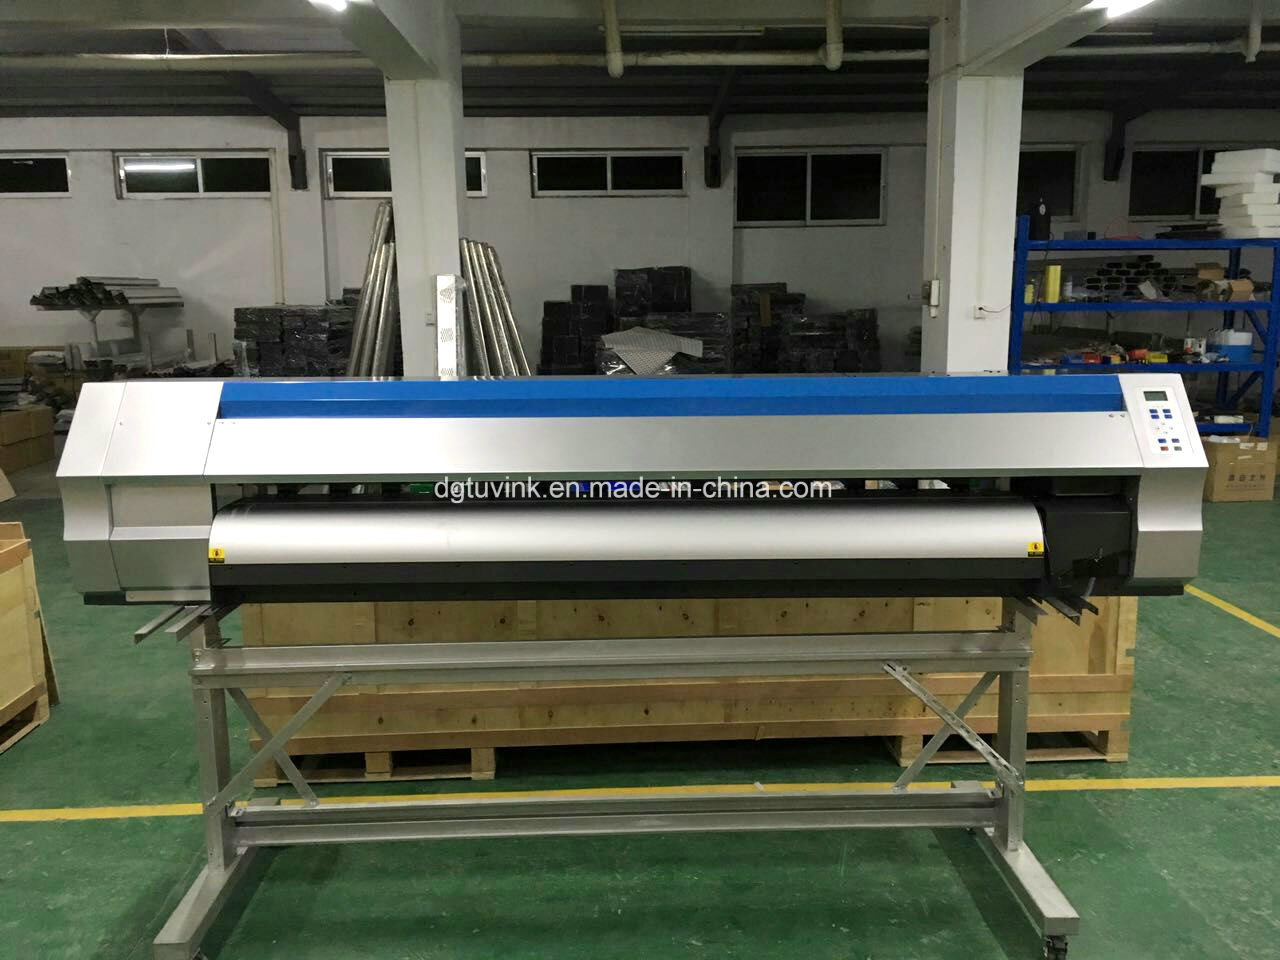 1.8m 1440dpi Eco Solvent Printing Machine Flex Banner /Vinyl /Sticker Advertising Printer with Original Dx5 Dx7 Print Head